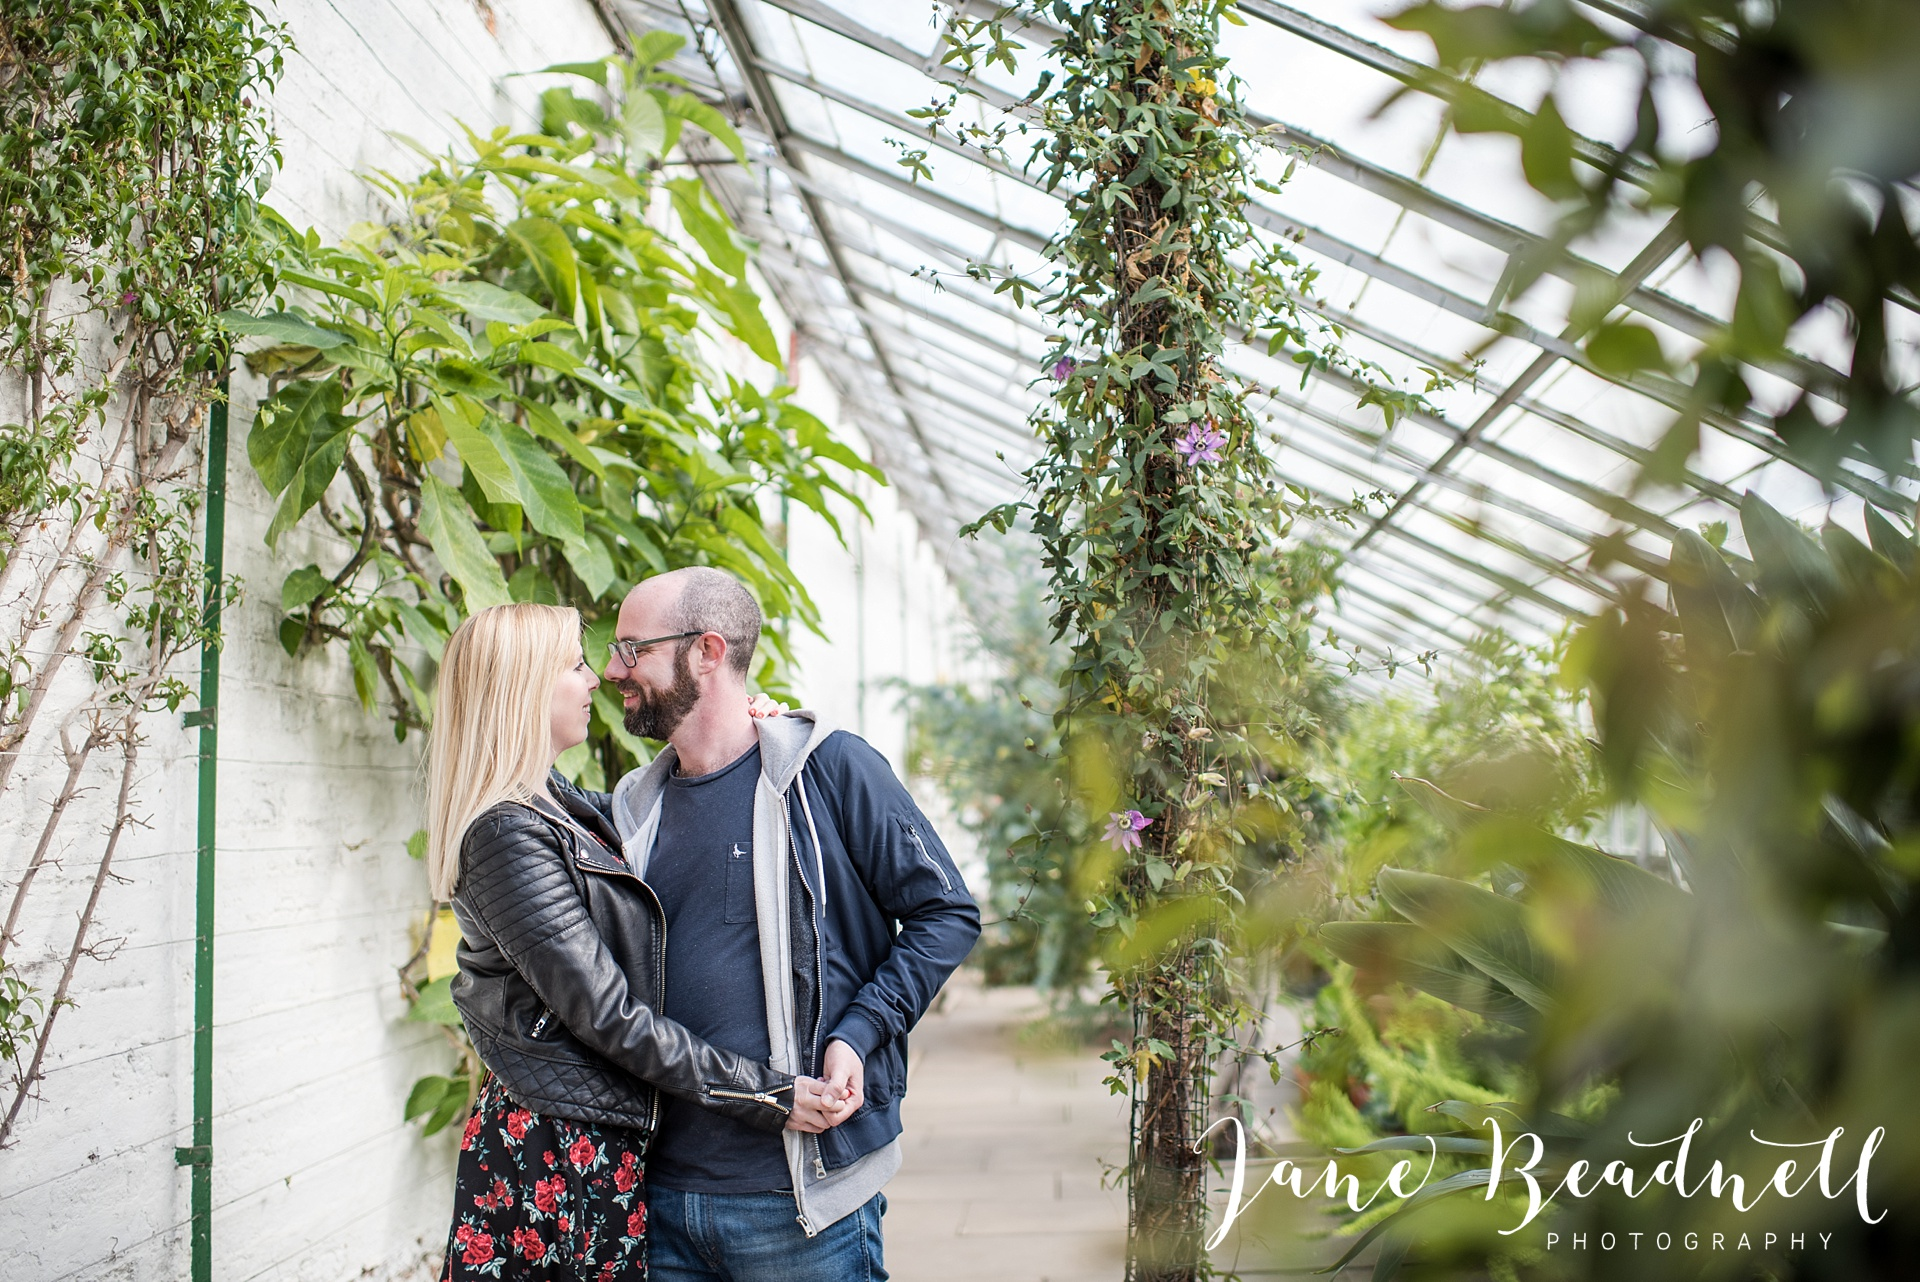 Temple Newsam engagement photography by Jane Beadnell Wedding Photography_0017